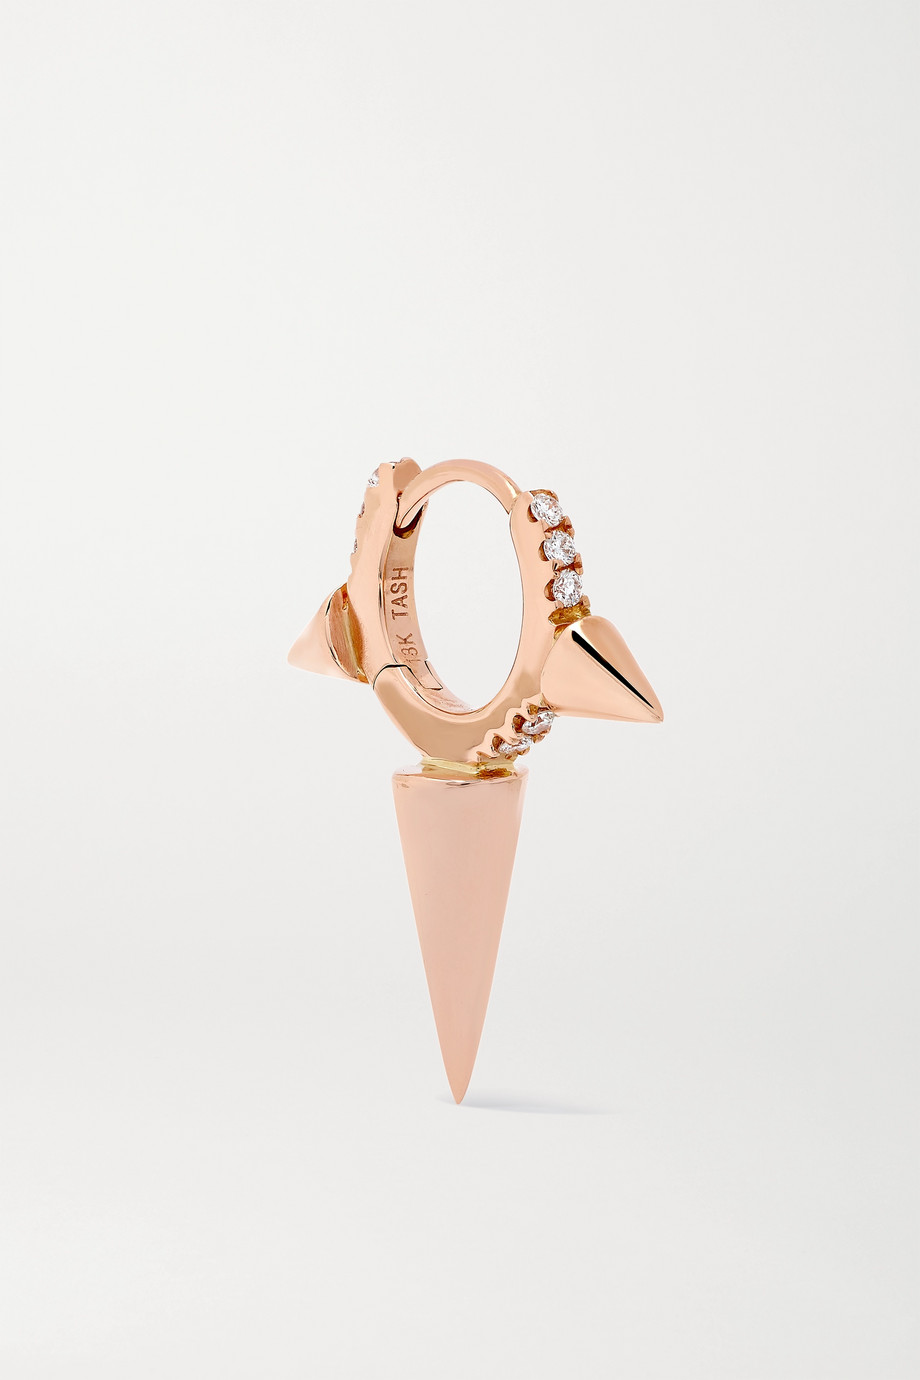 MARIA TASH Triple Spike 6.5mm 18-karat rose gold diamond earring